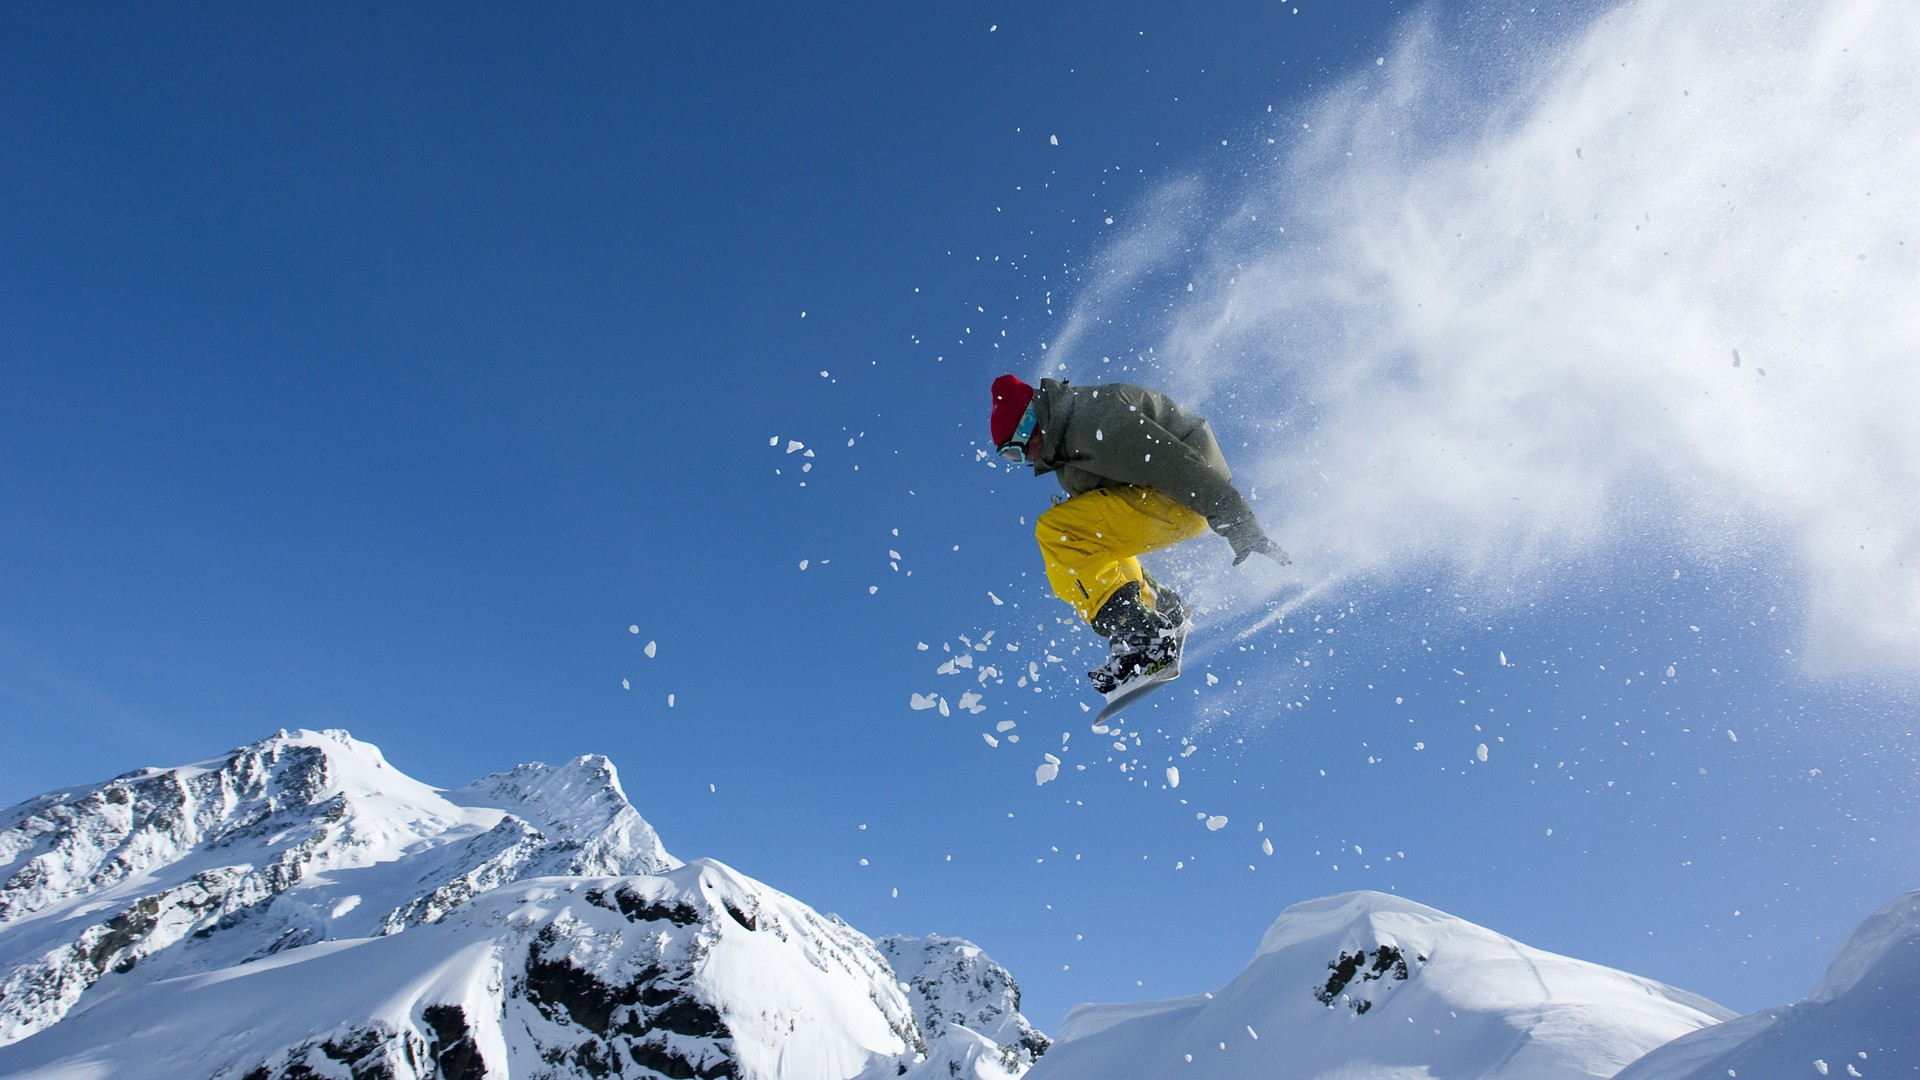 Cool jump on a snowboard in the mountains